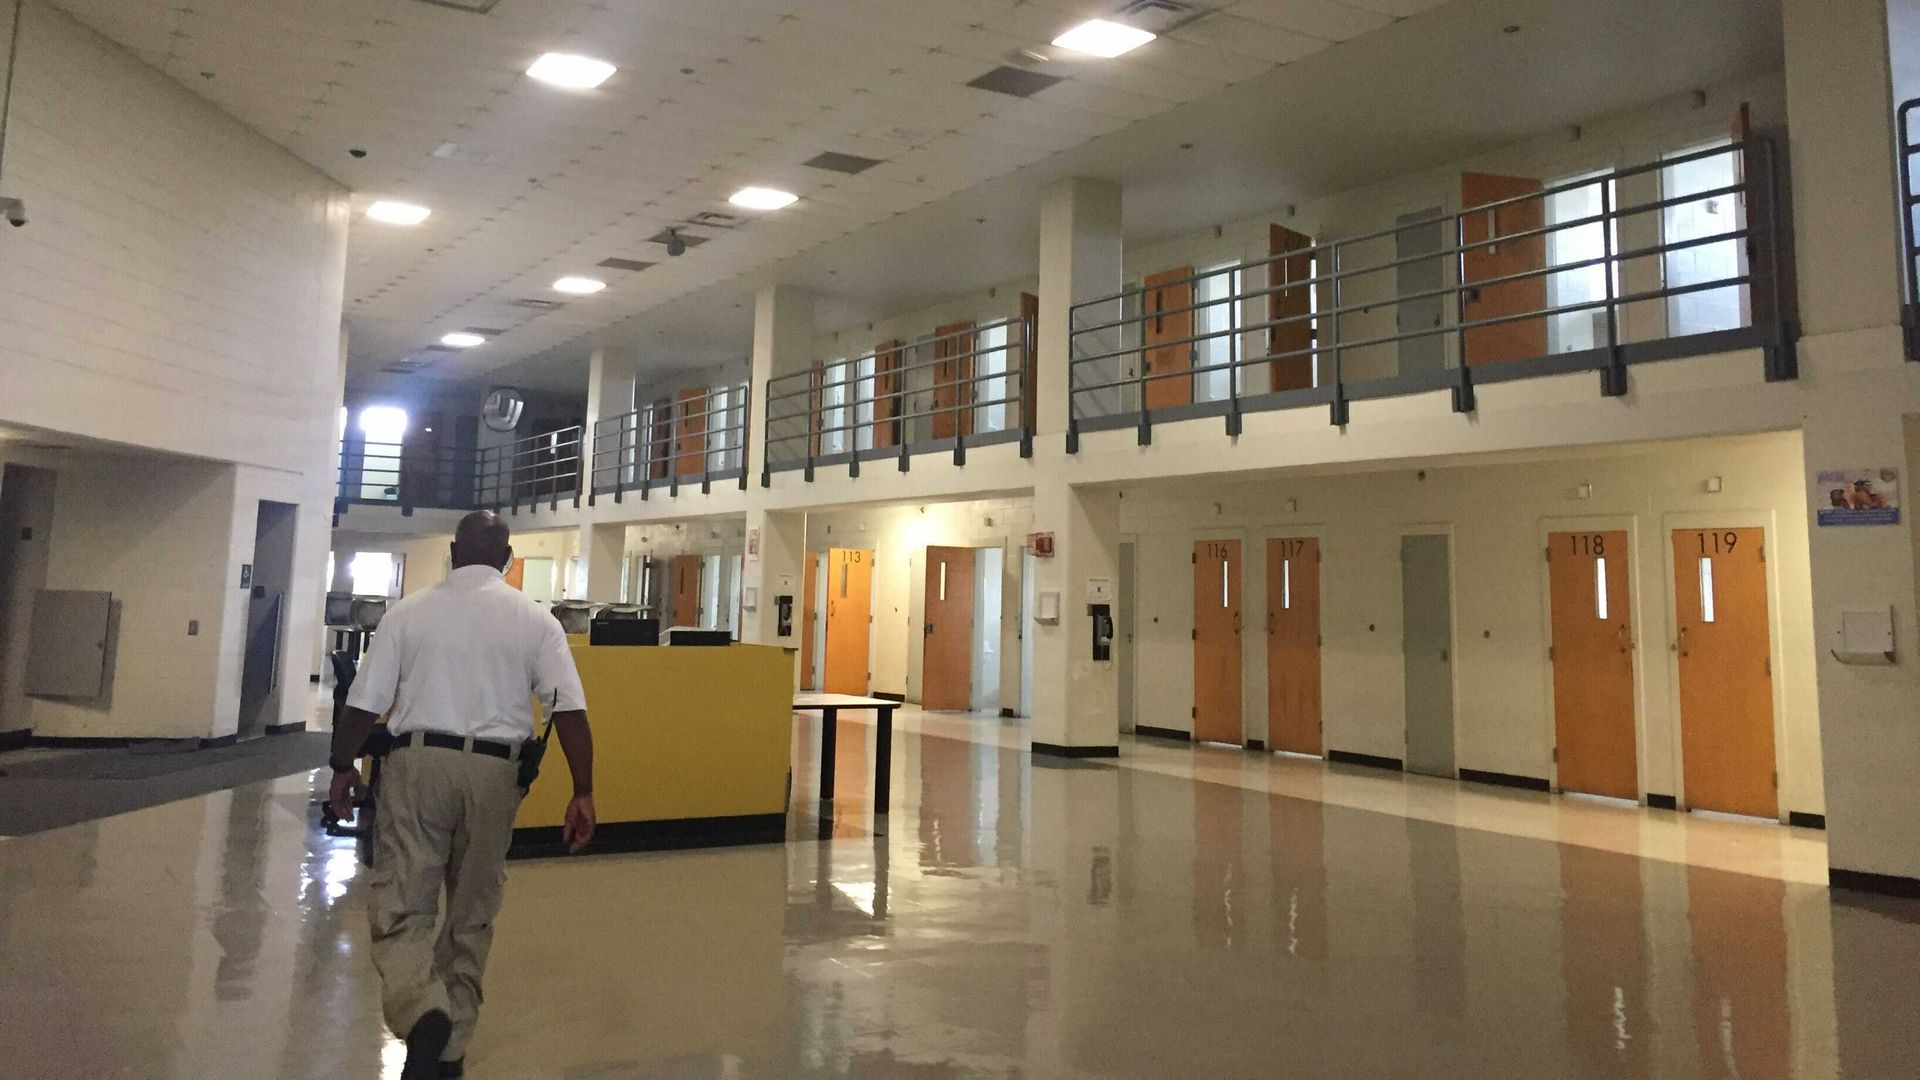 A city jail employee walks in the empty open-plan floor with individual cells along the side of the room.